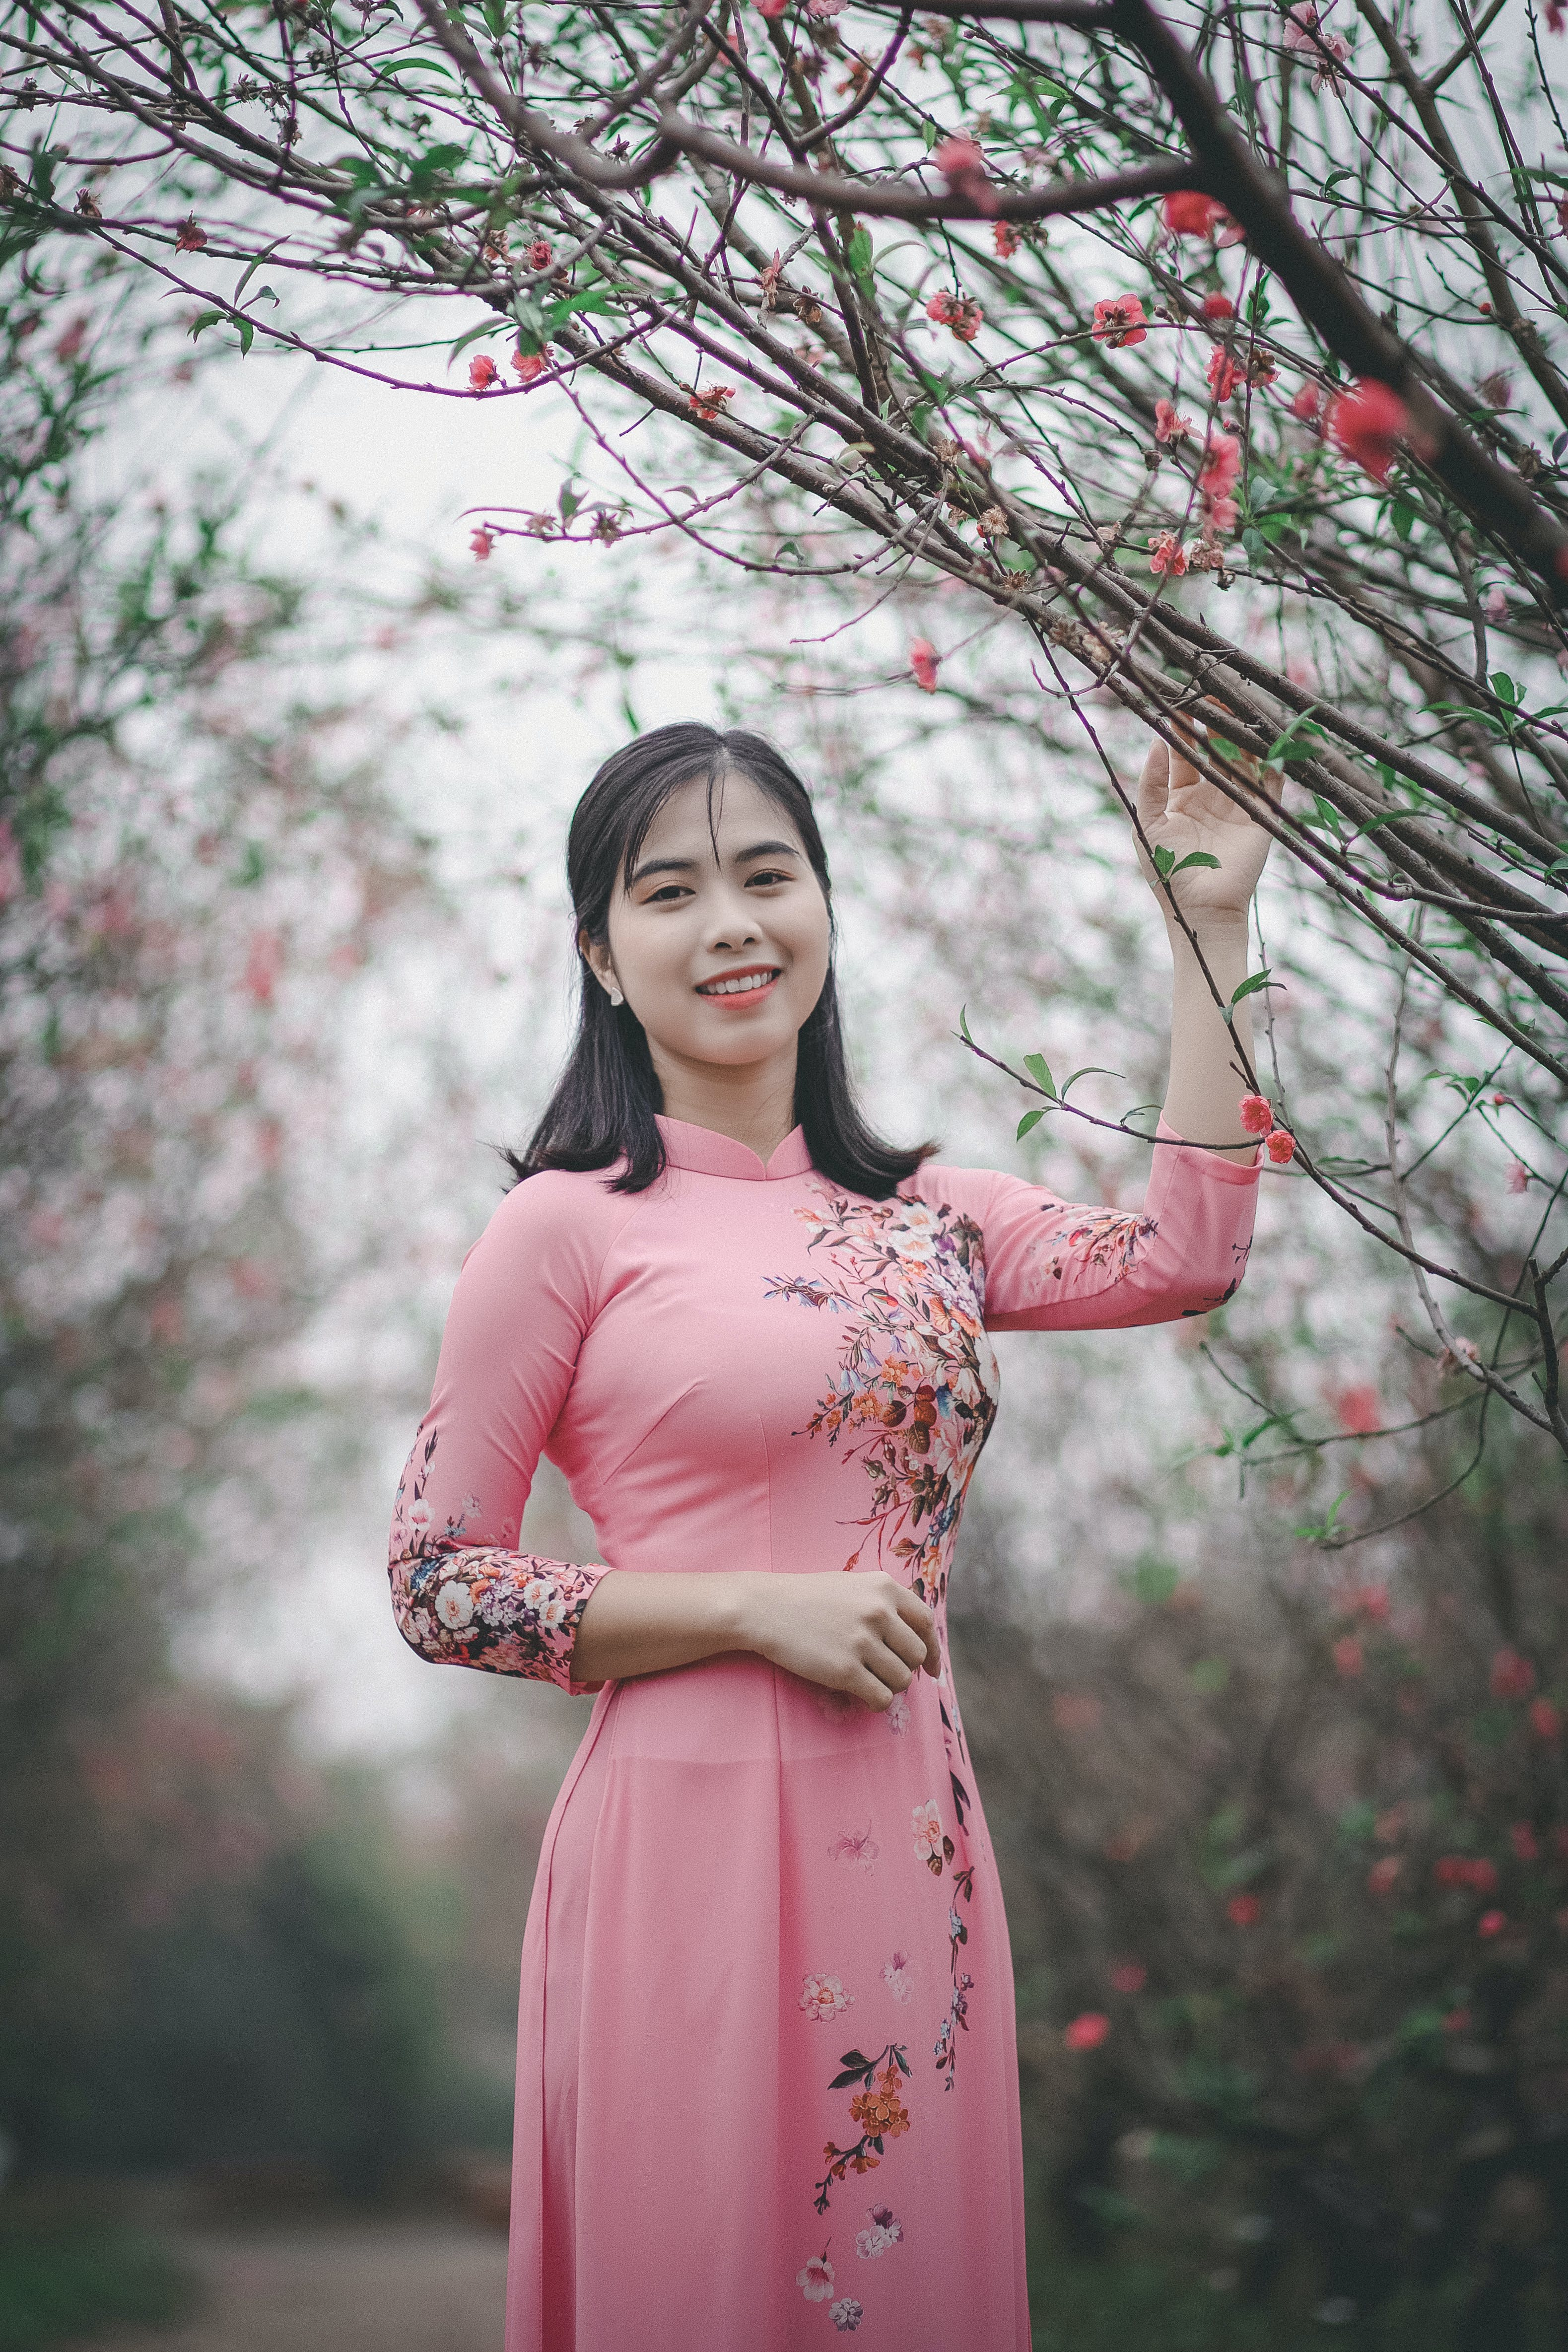 Women's Pink and Black Floral Dress